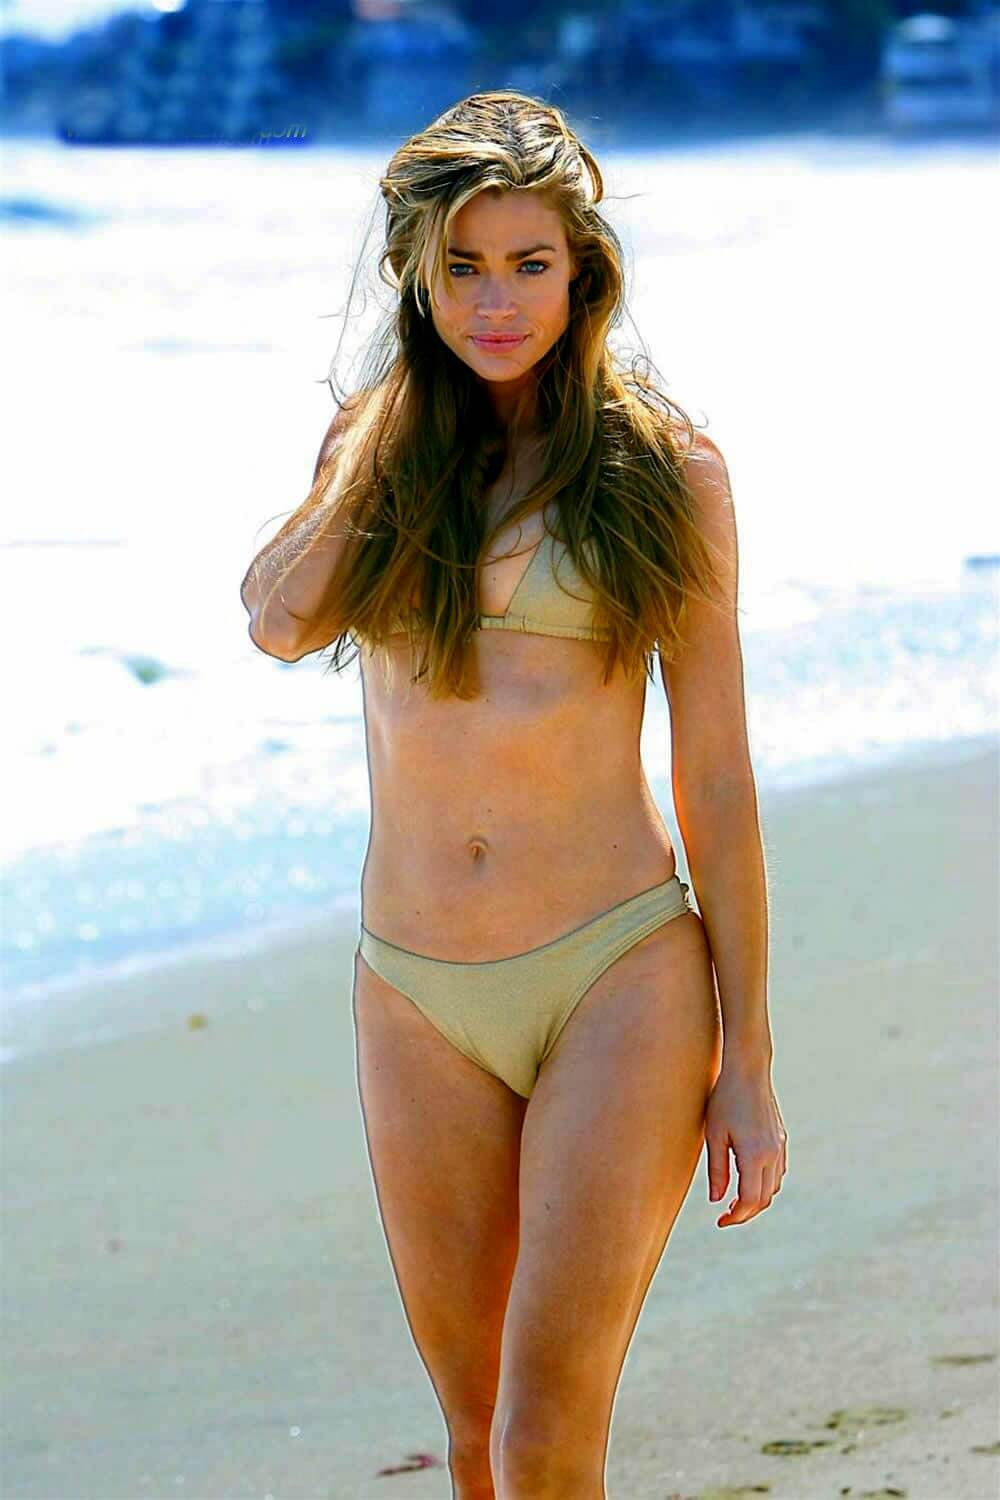 Denise richards Hot in Golden Bikini